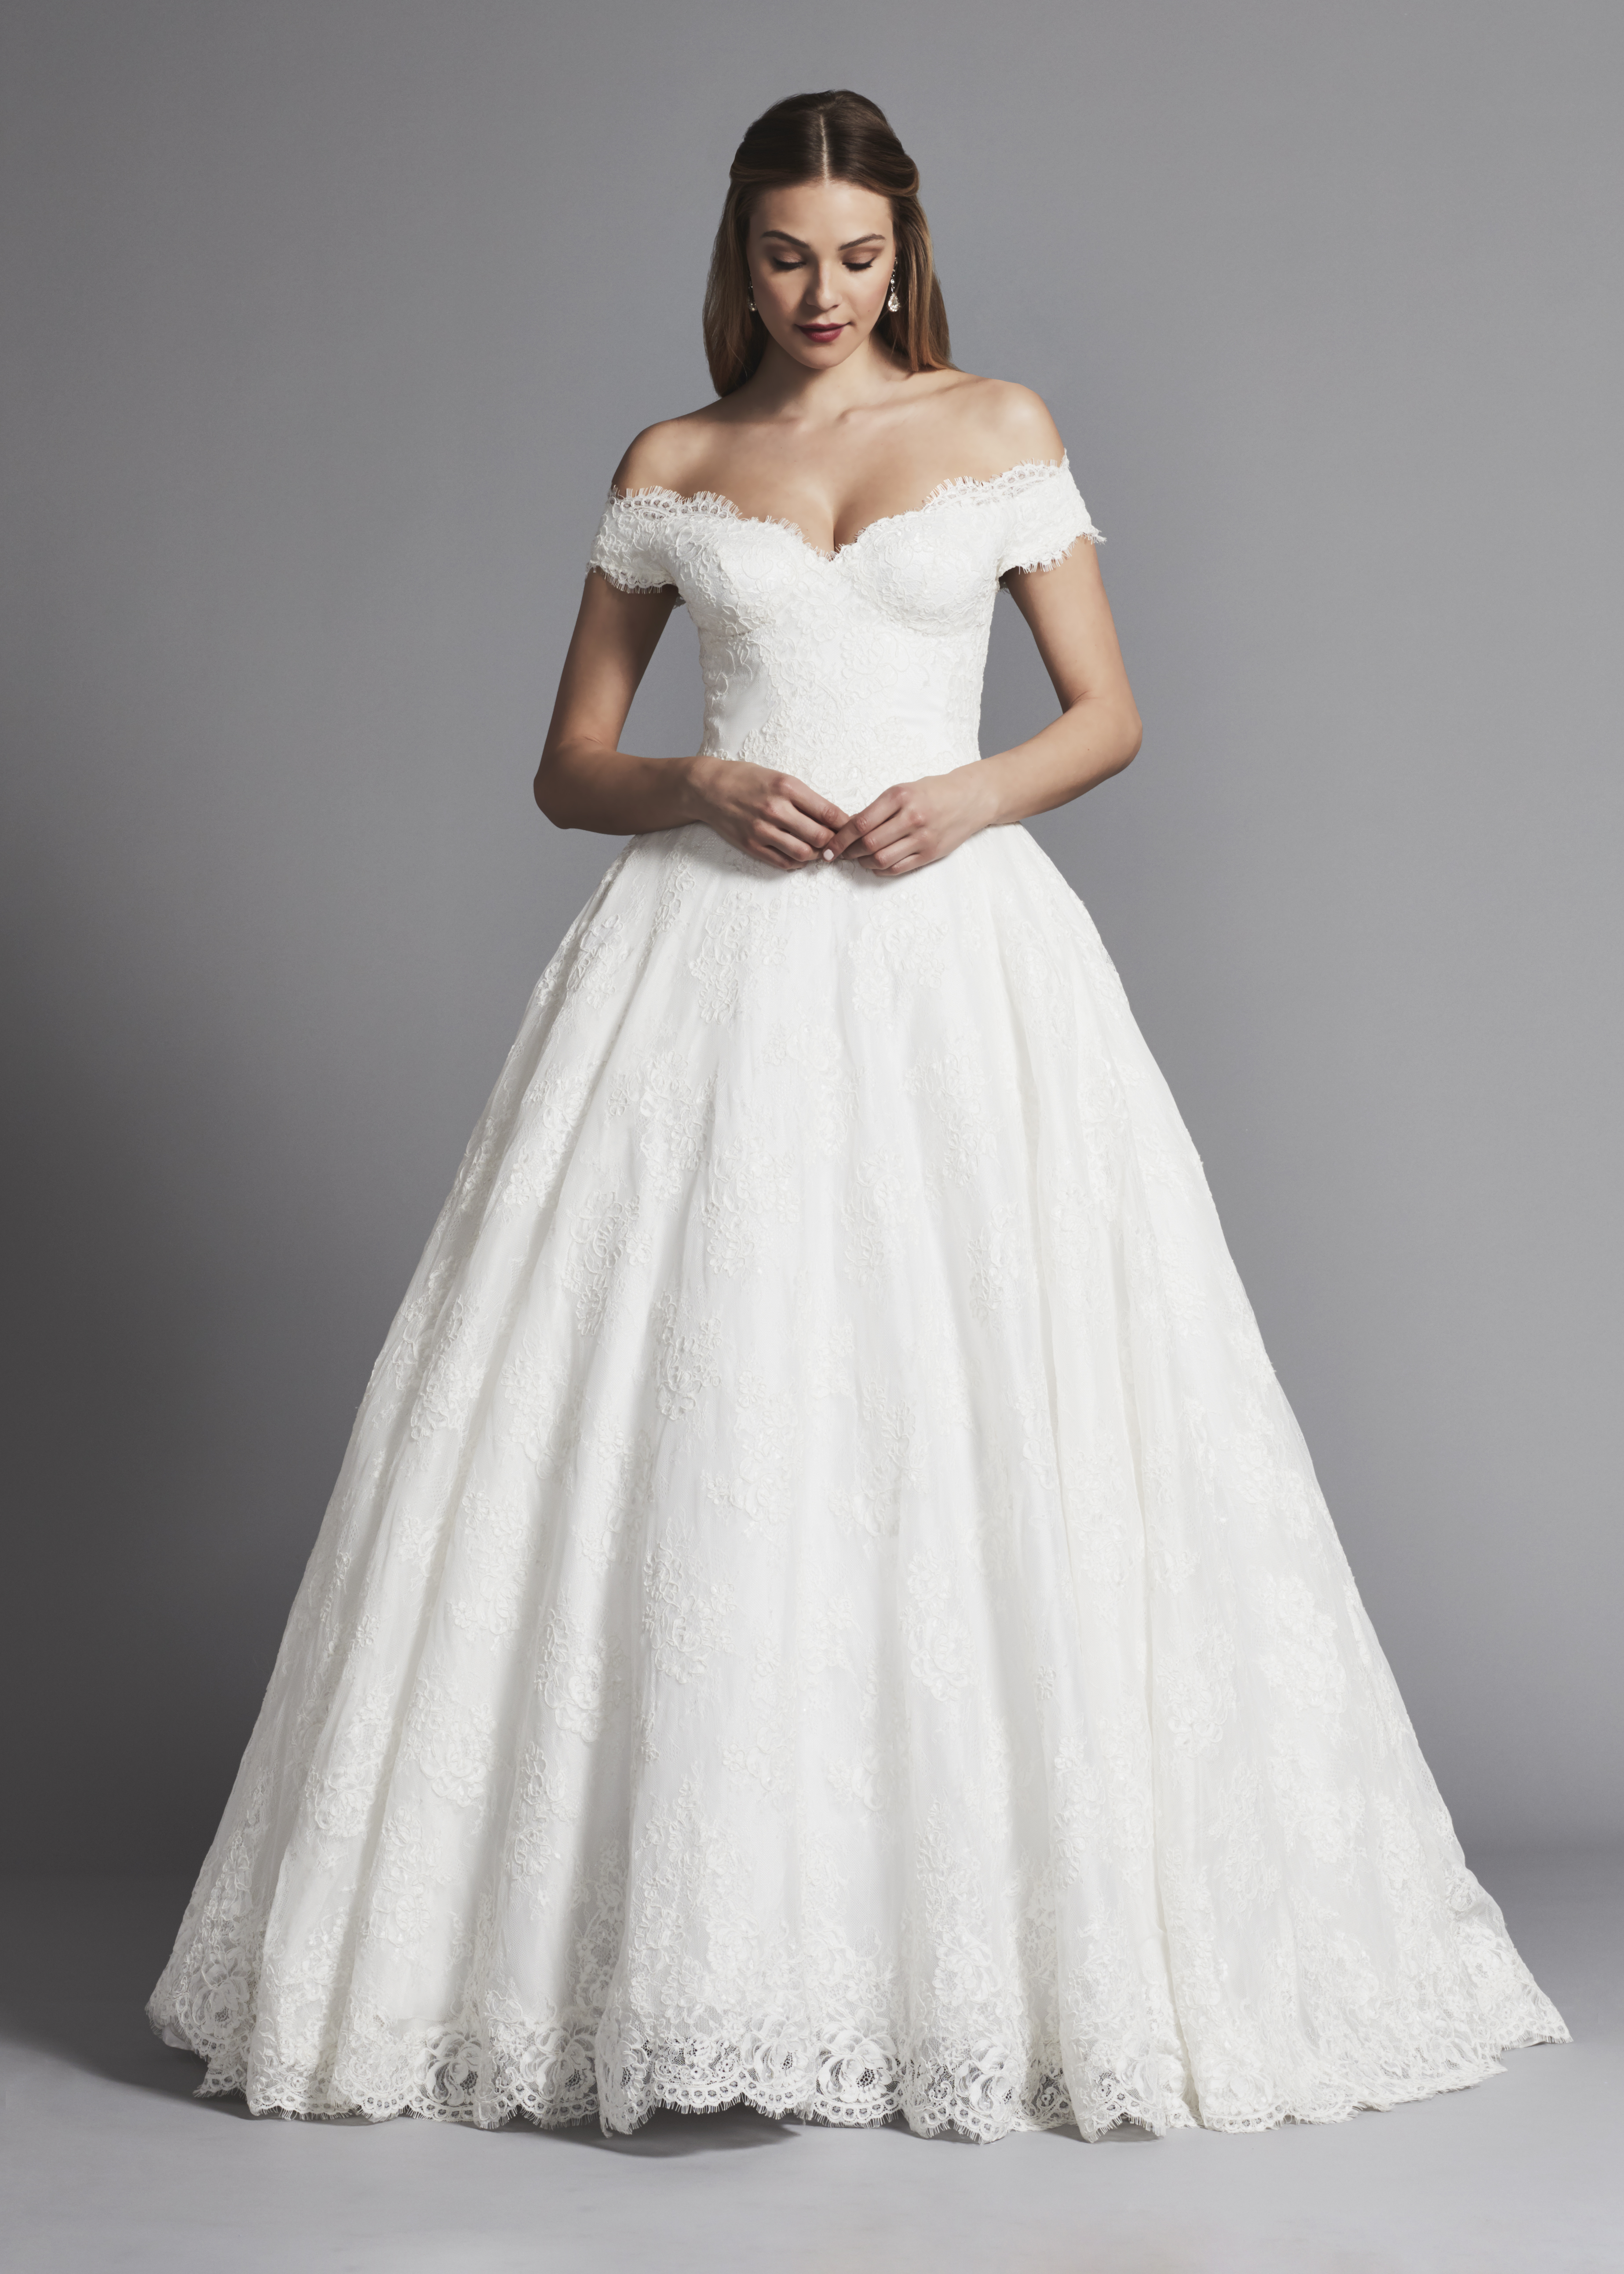 Off The Shoulder Lace Ball Gown Wedding Dress | Kleinfeld Bridal